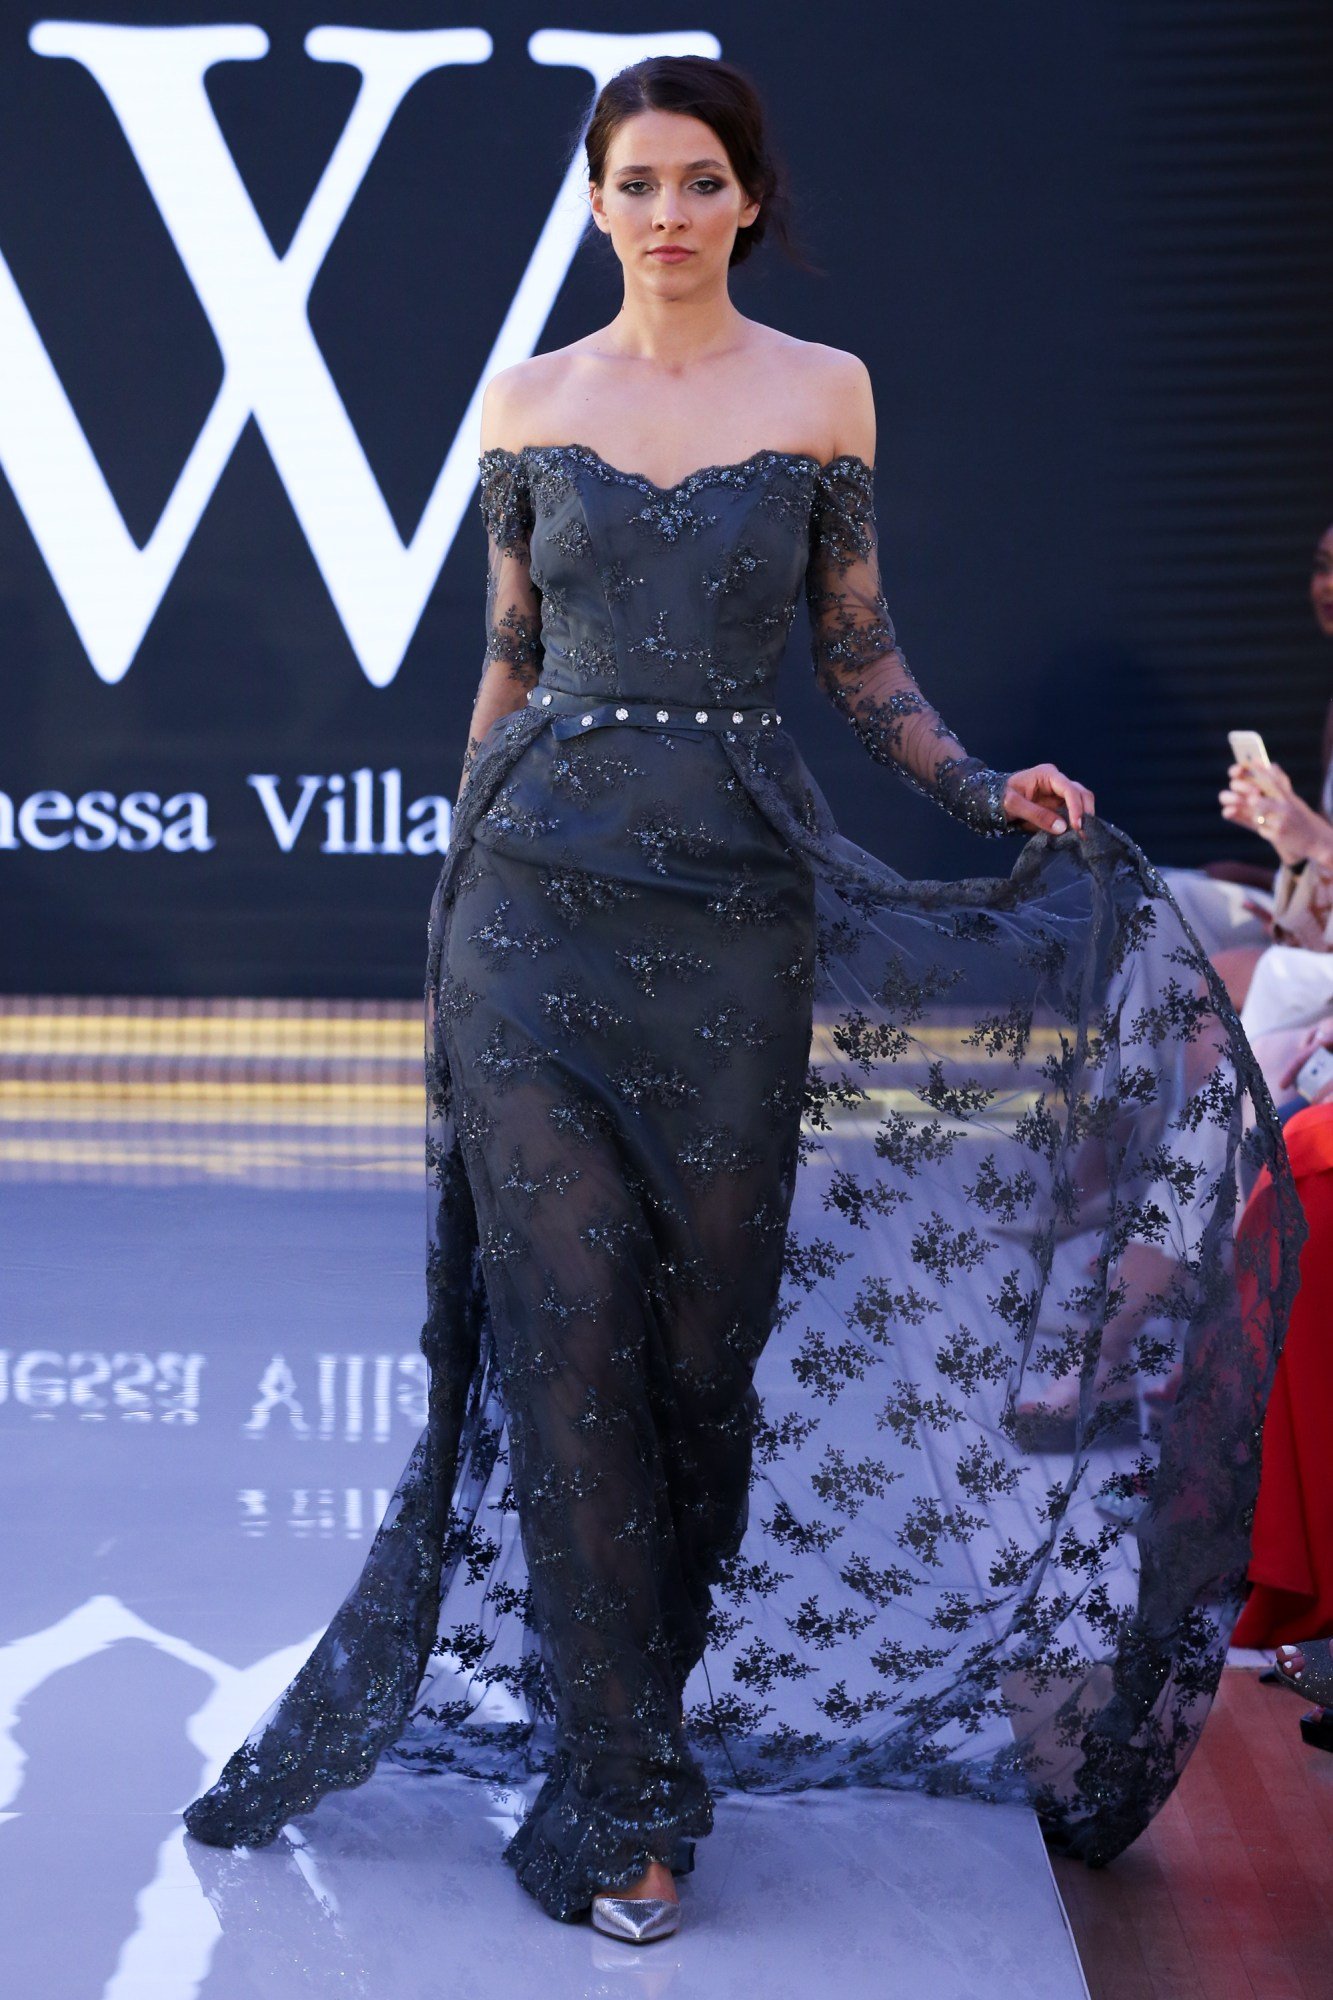 Vanessa Villafane Ready Couture Fall Winter 2018 Collection Dubai Fashion Week